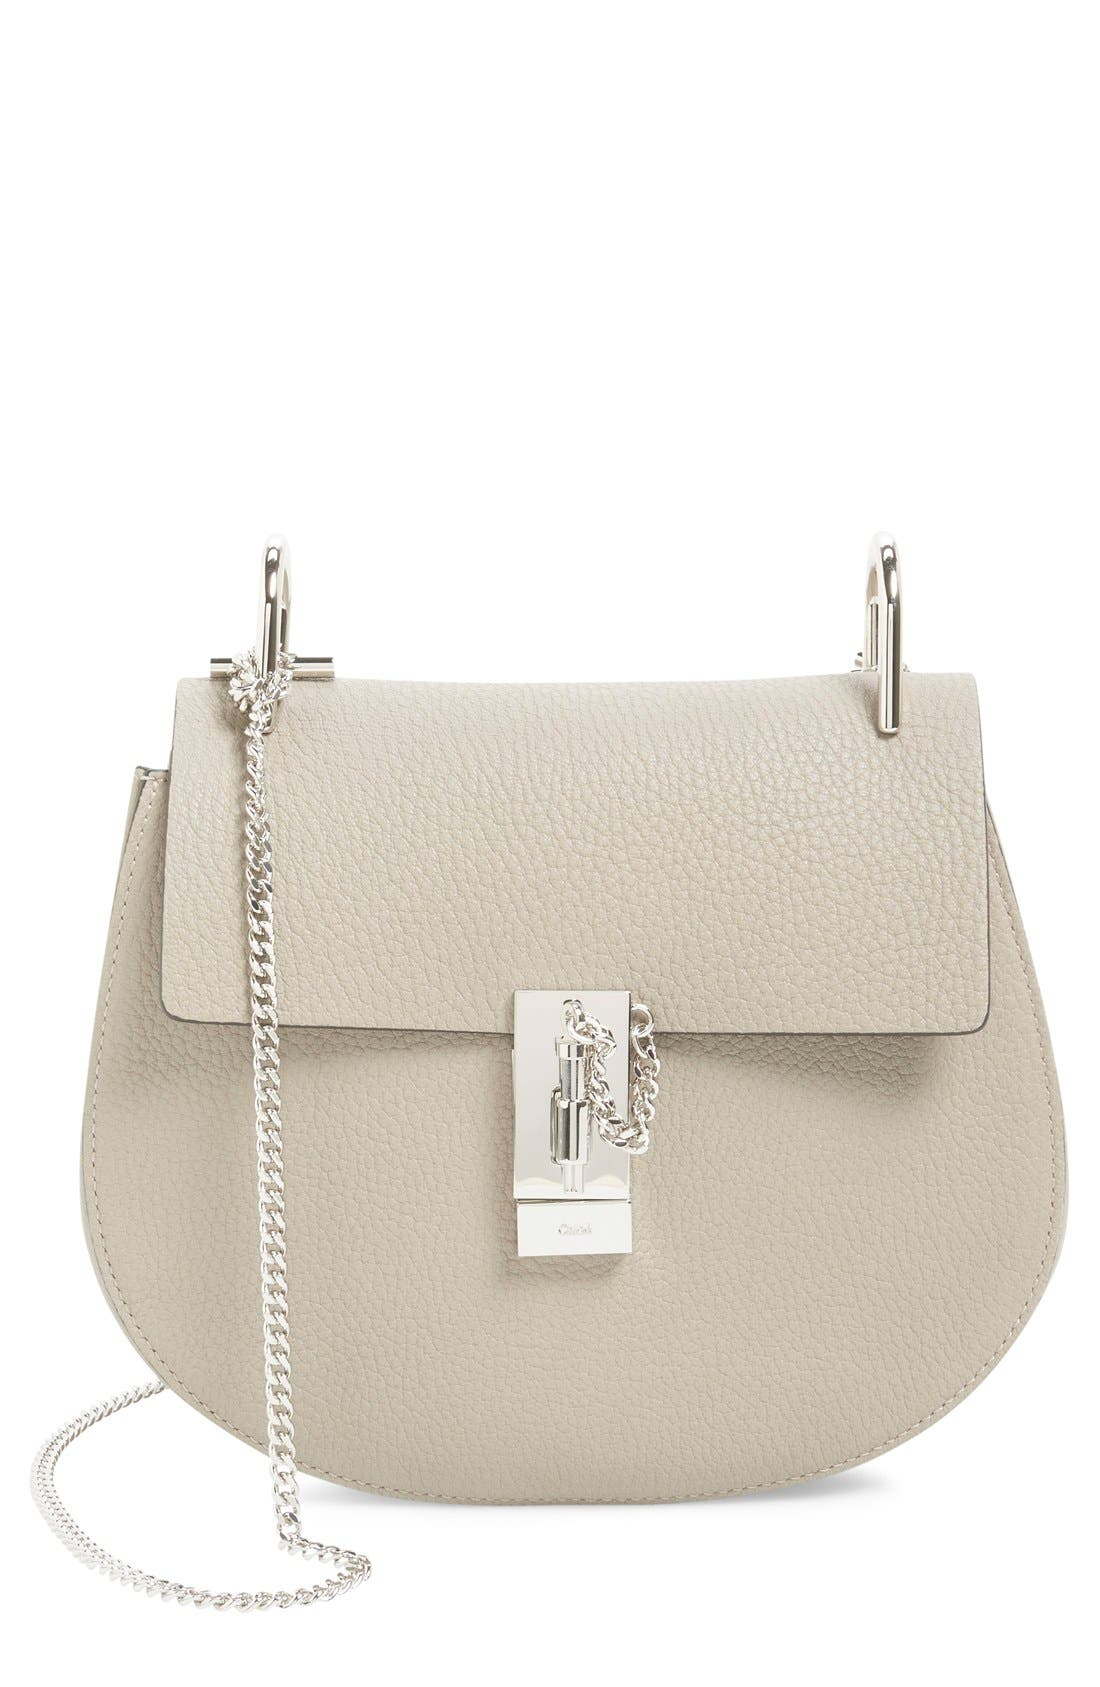 'Small Drew' Leather Shoulder Bag,                         Main,                         color, Motty Grey